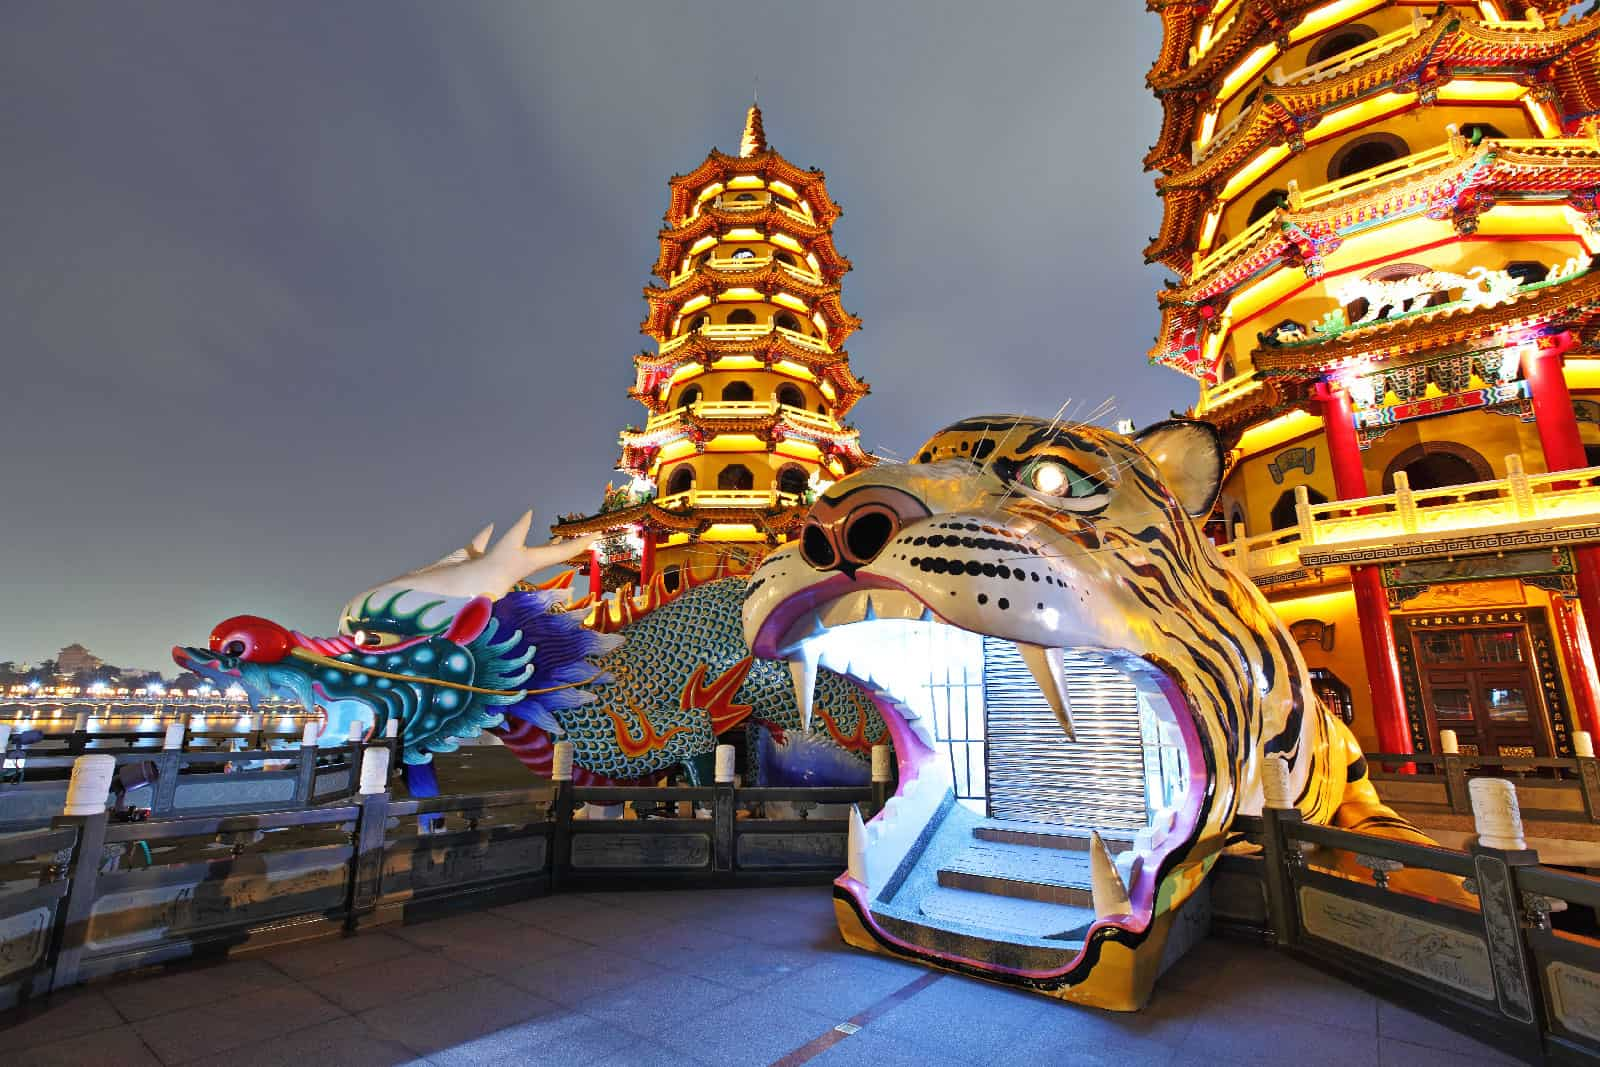 Dragon and Tiger Pagodas at Night in Kaohsiung, Taiwan